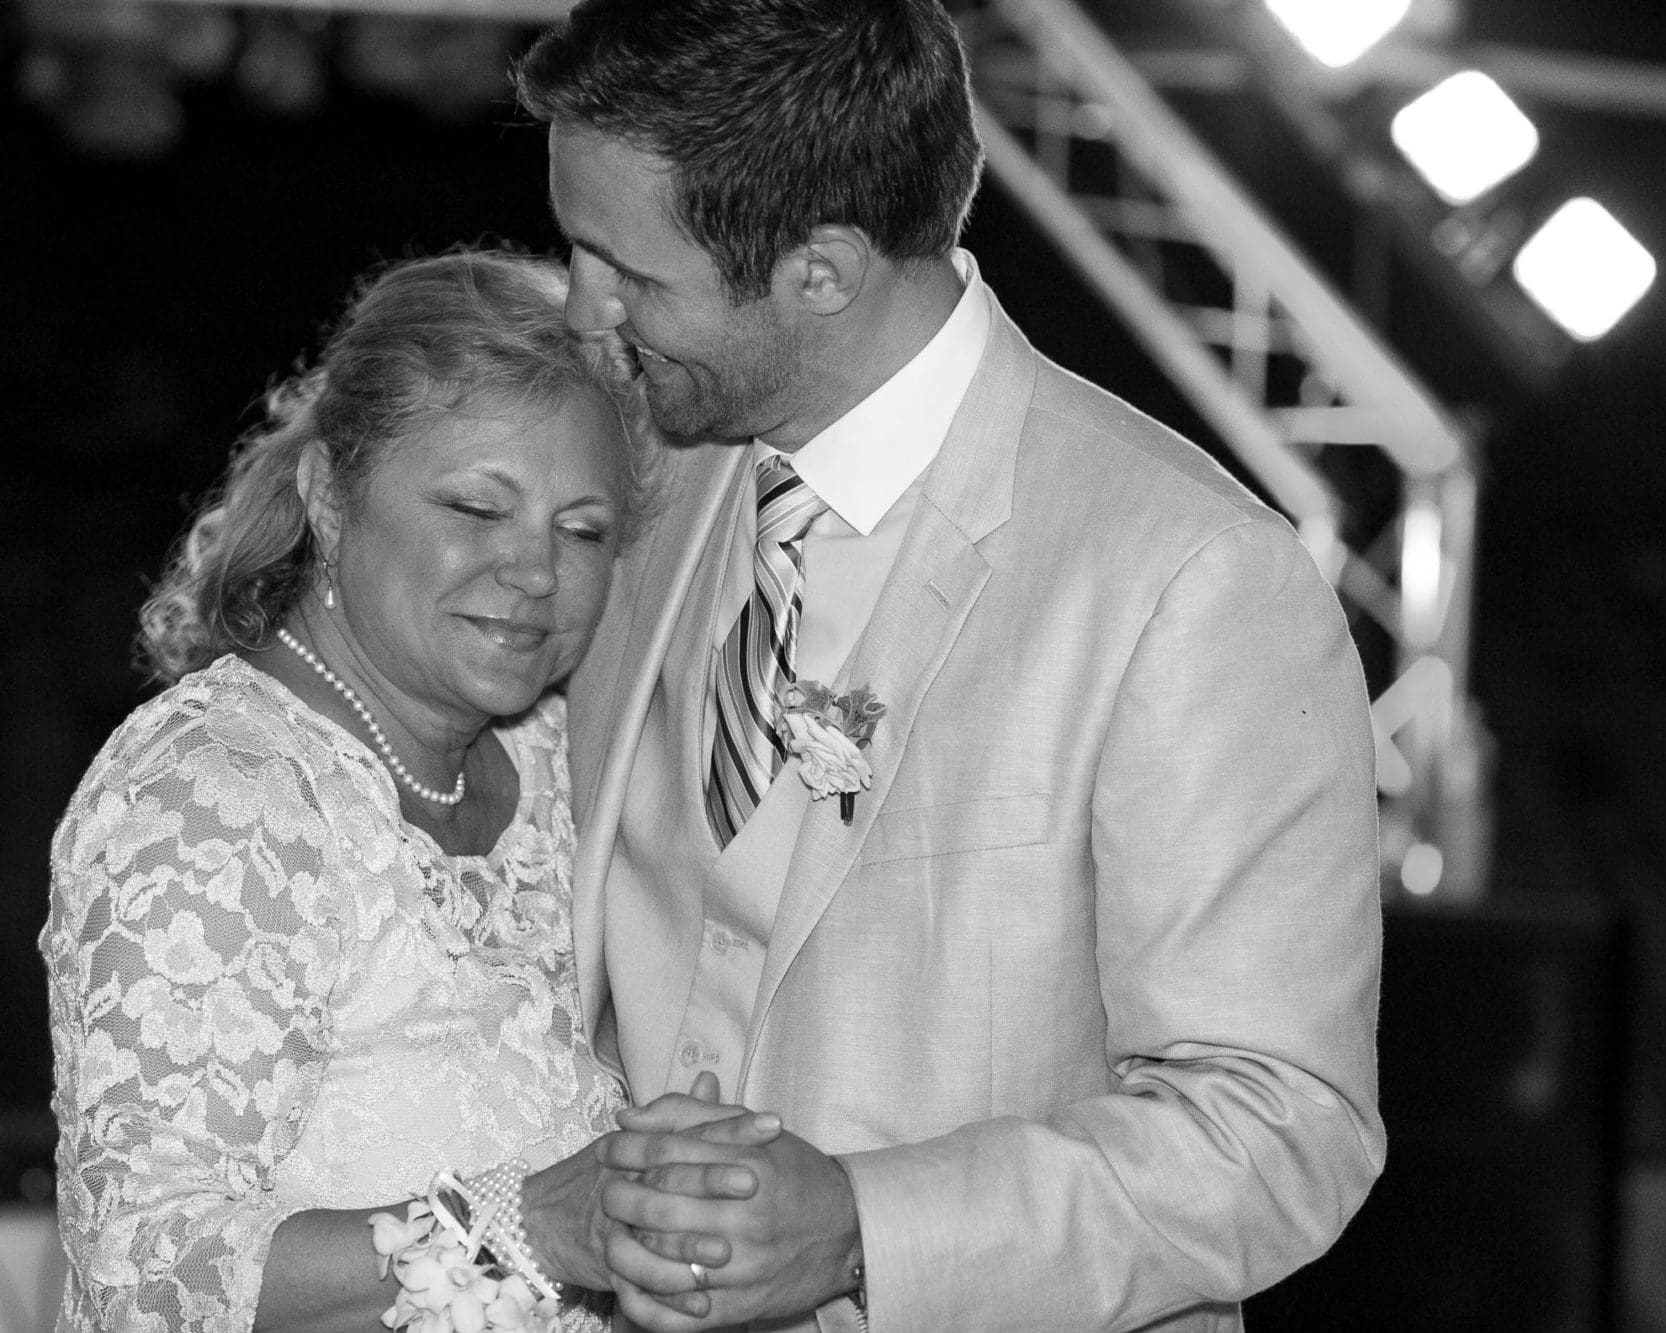 Sweet moment during the mother son dance at wedding in Costa Verde. Love candid photography!